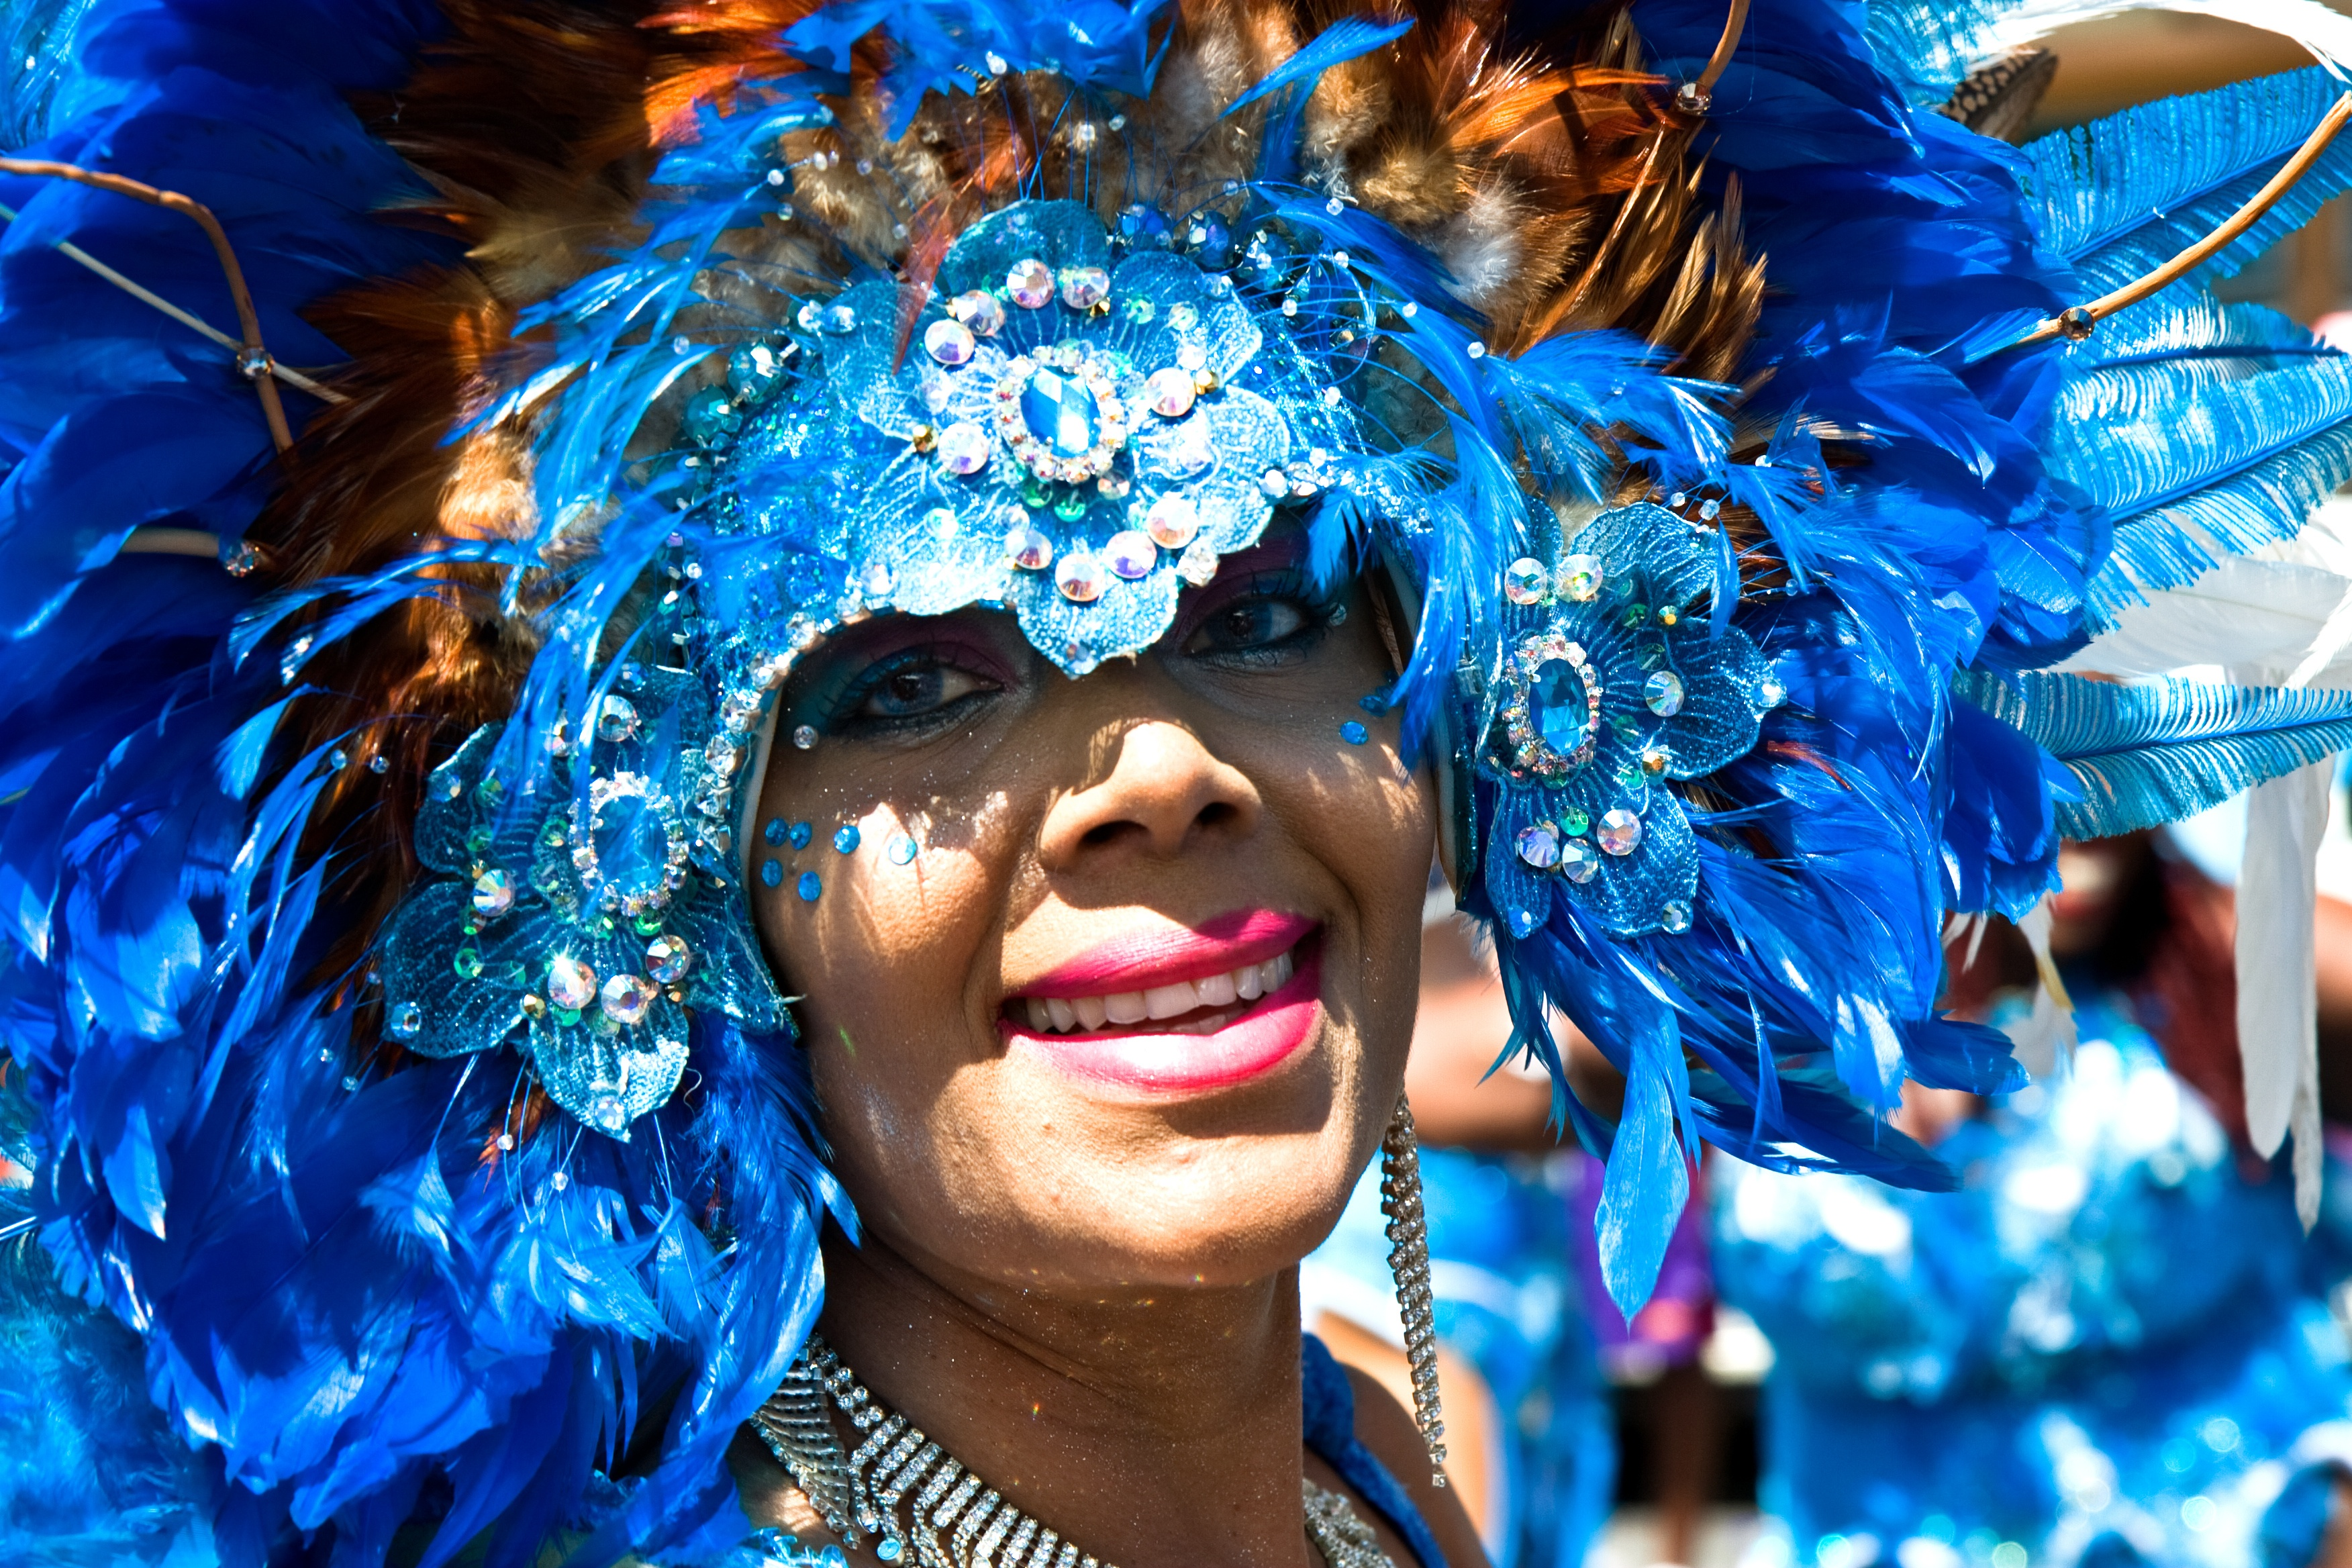 Woman wearing a blue headdress with feathers for Carnaval.